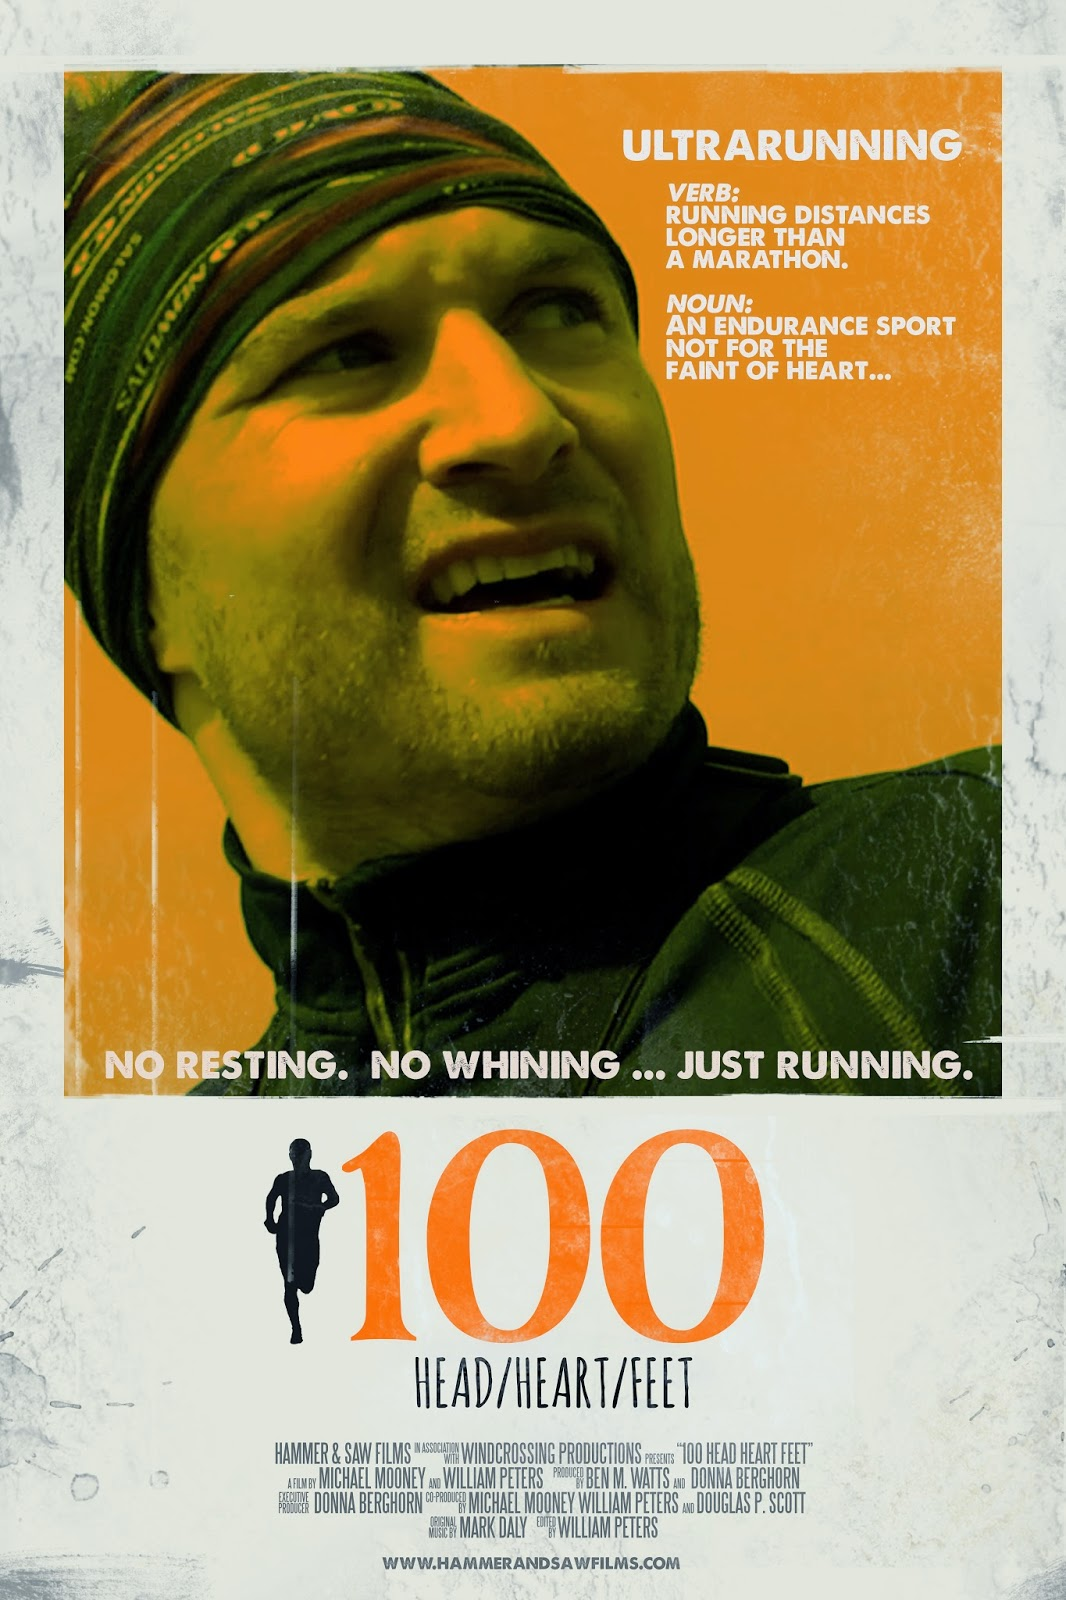 In 2013 I returned to Vermont to run in my 5th Vermont 100-Mile Endurance Run. In the months leading up to the race, I had caught wind of a documentary film ...